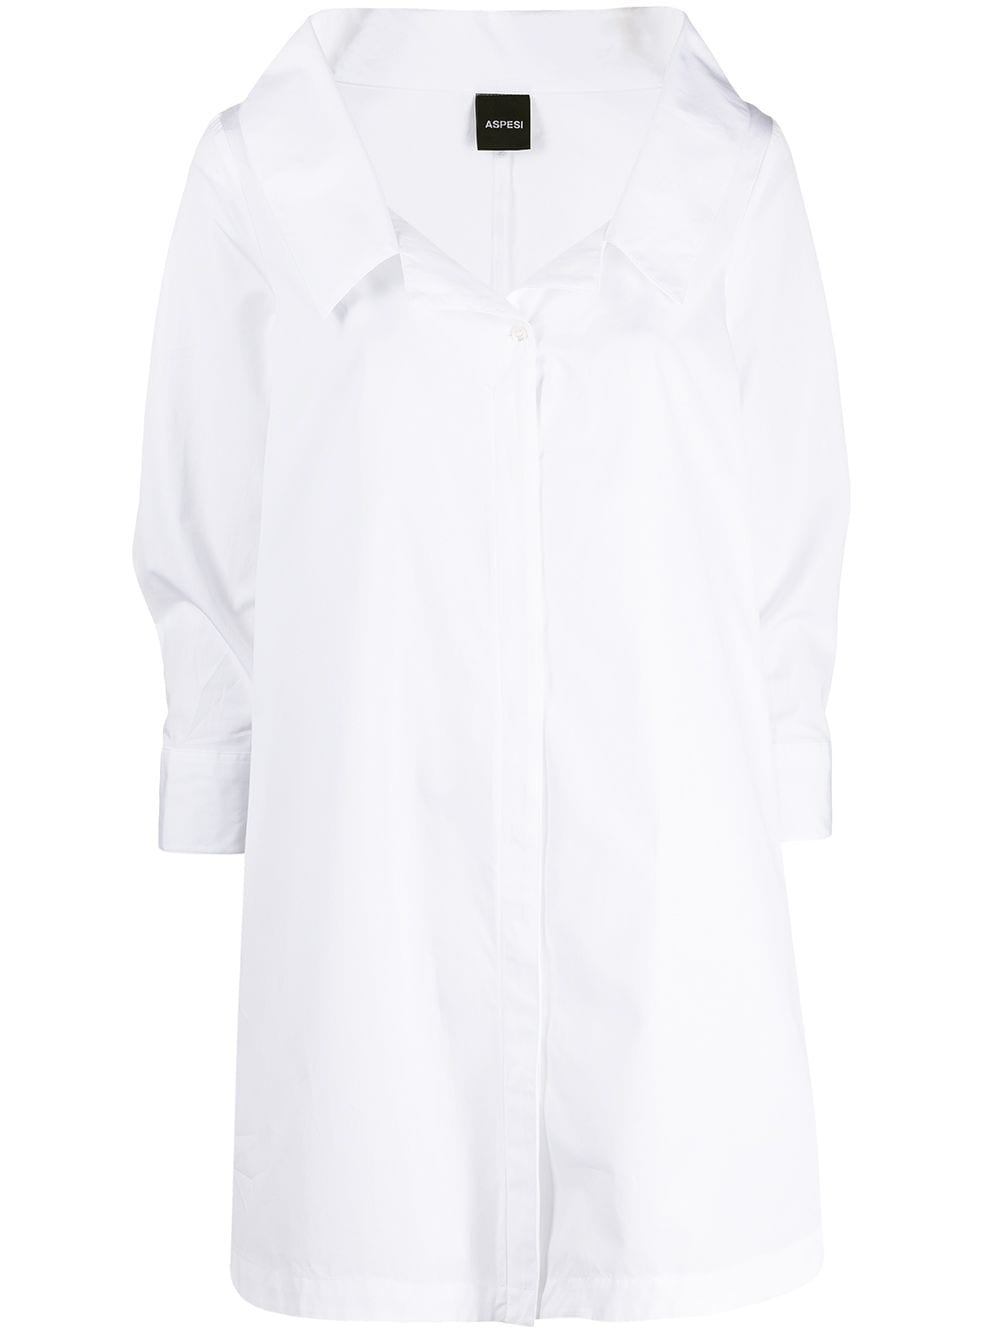 Picture of Aspesi | Wide-Neck Cotton Shirt